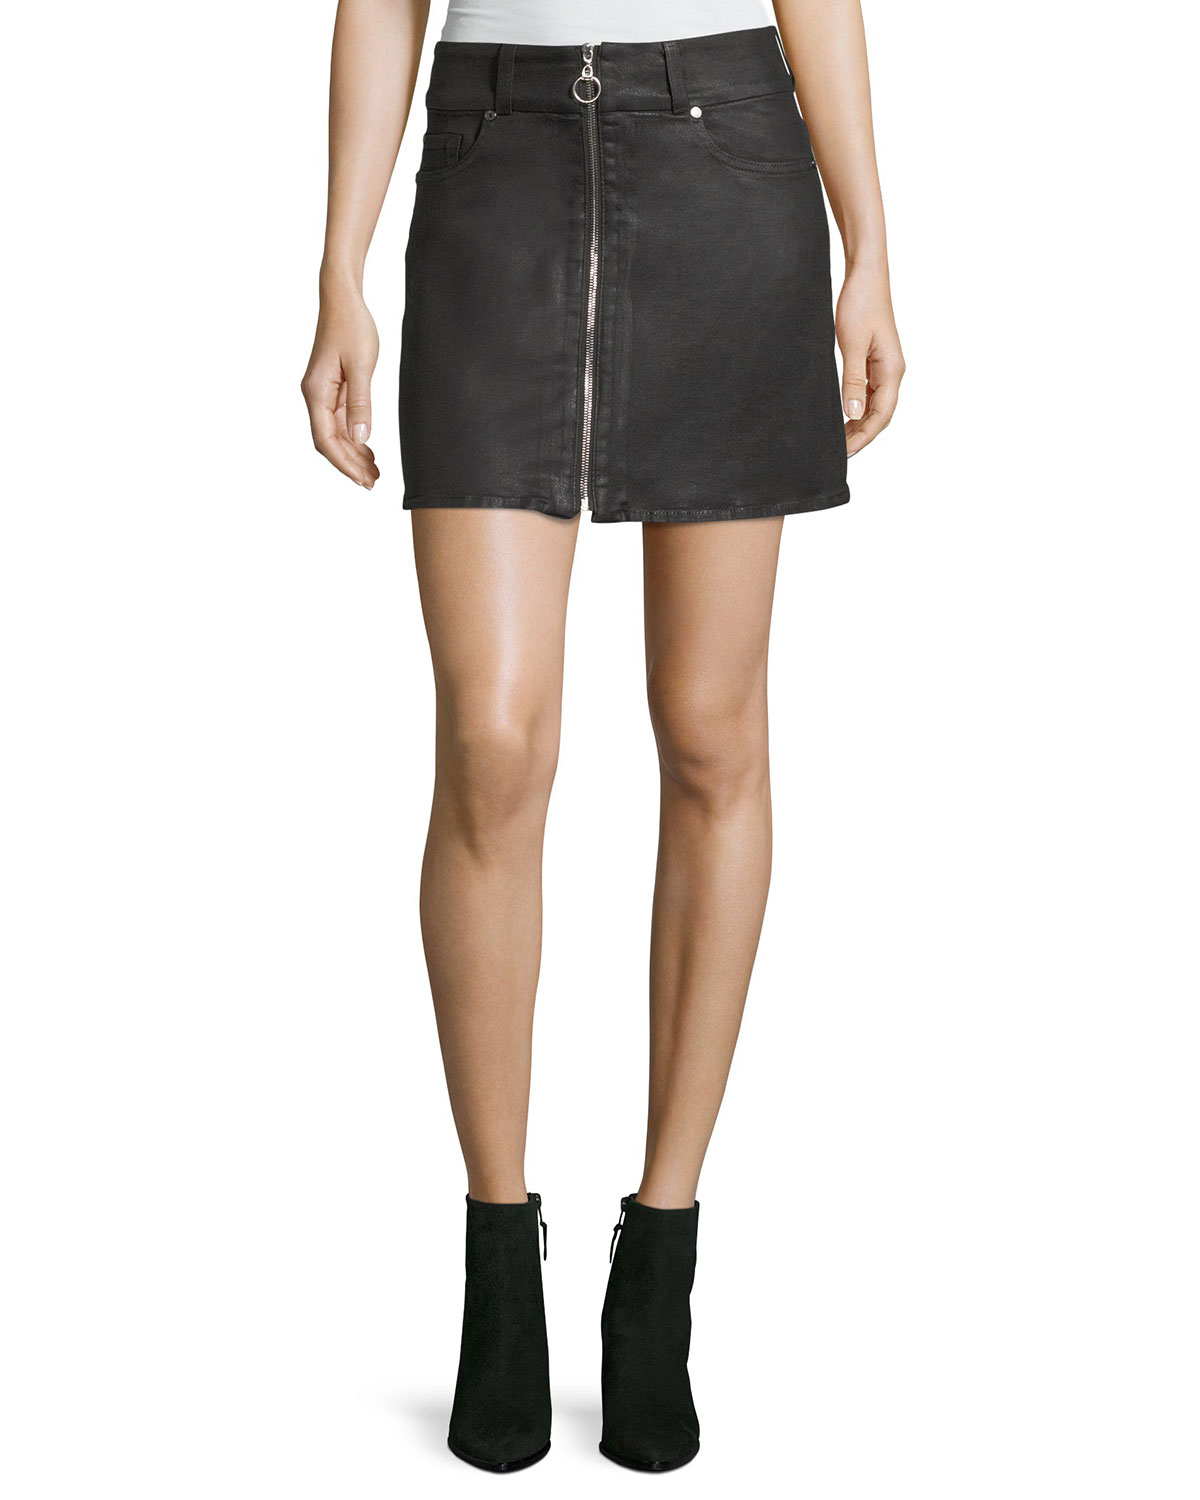 7 for all mankind Zip-Front A-line Mini Skirt | Neiman Marcus